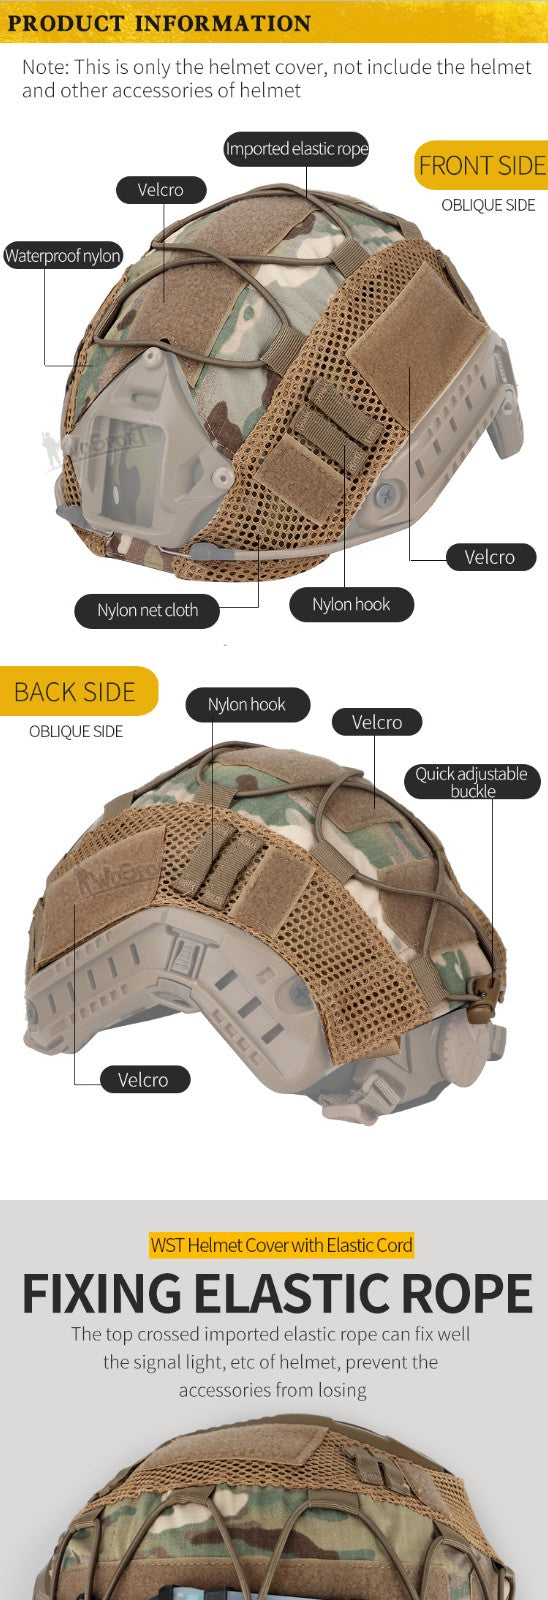 WST Helmet Cover with Elastic Cord